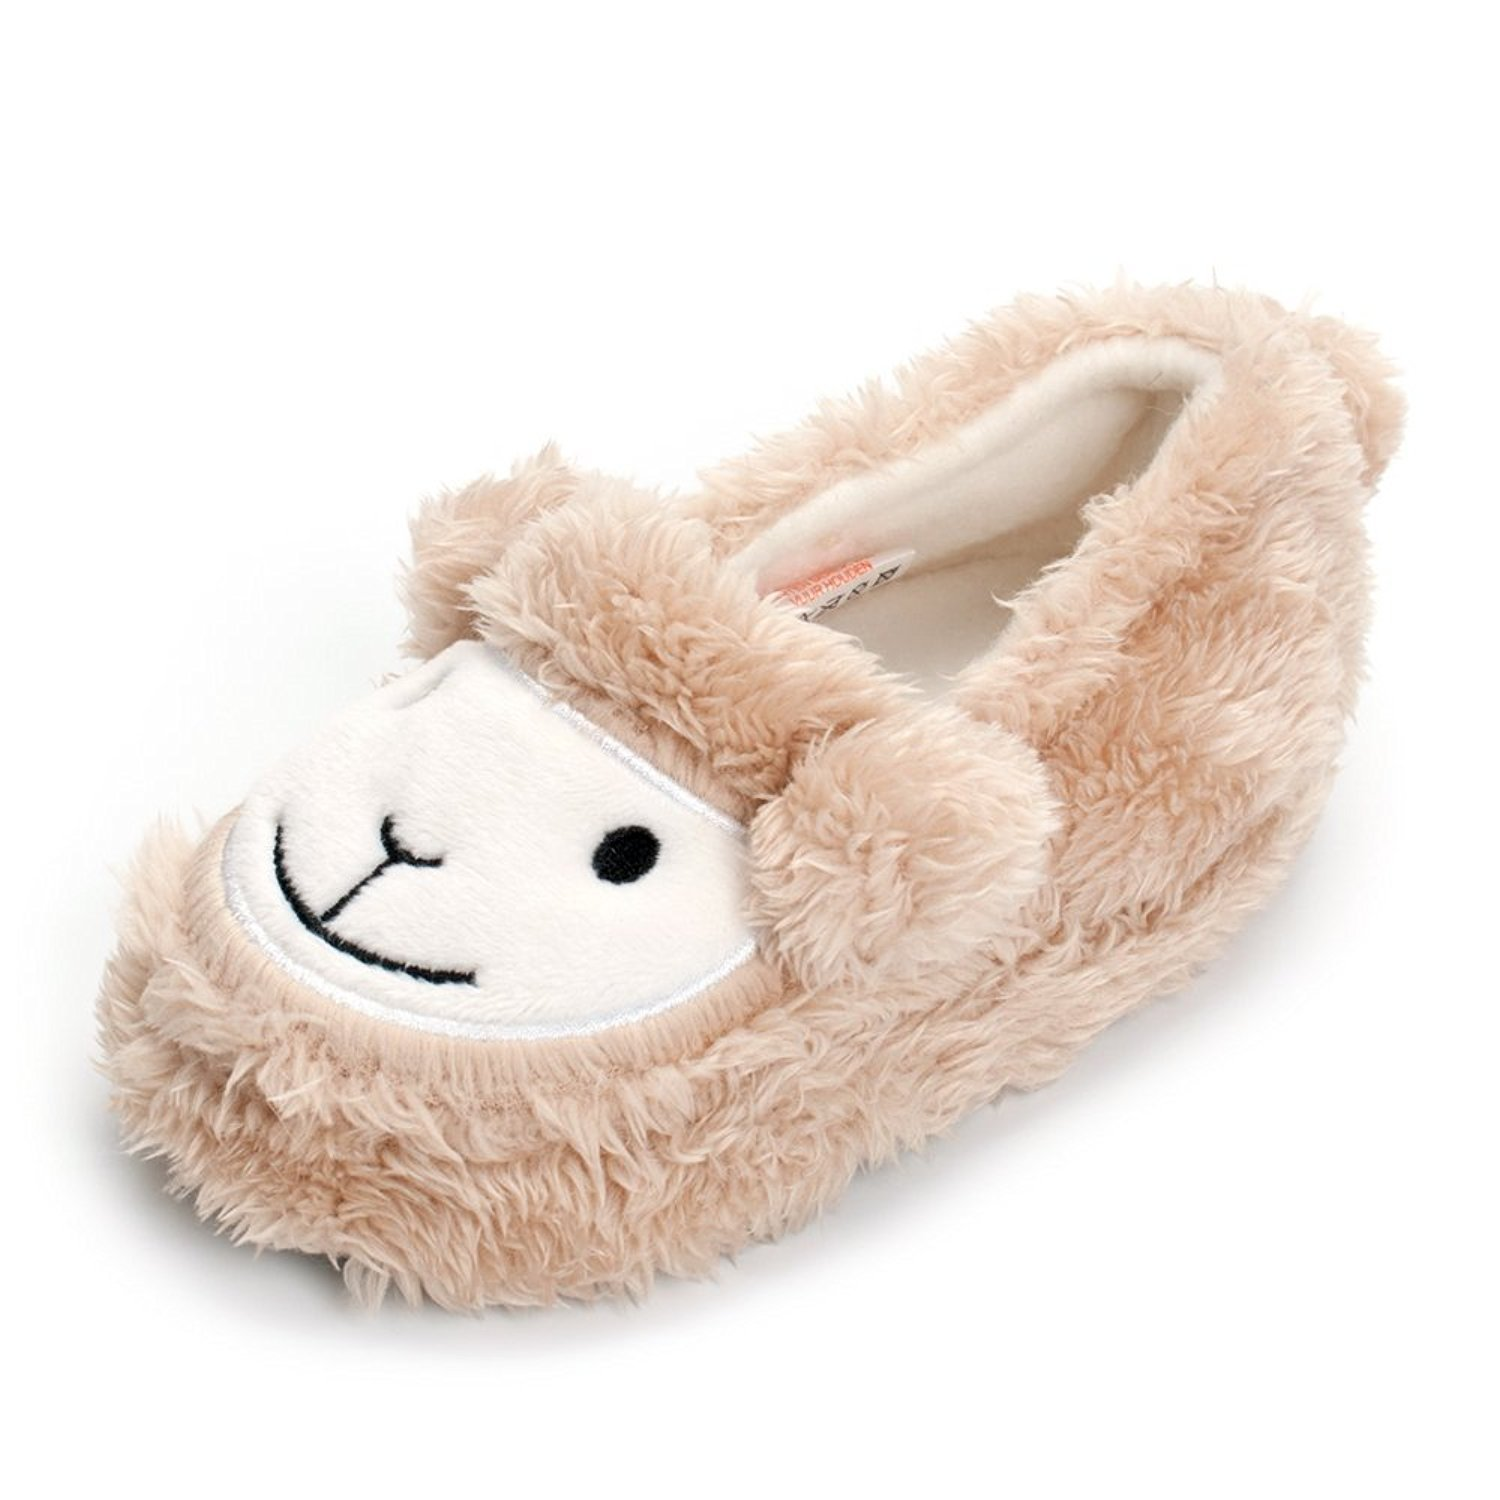 Estamico Toddler Boy's Premium Soft Plush Slippers Cartoon Warm Winter House Shoes